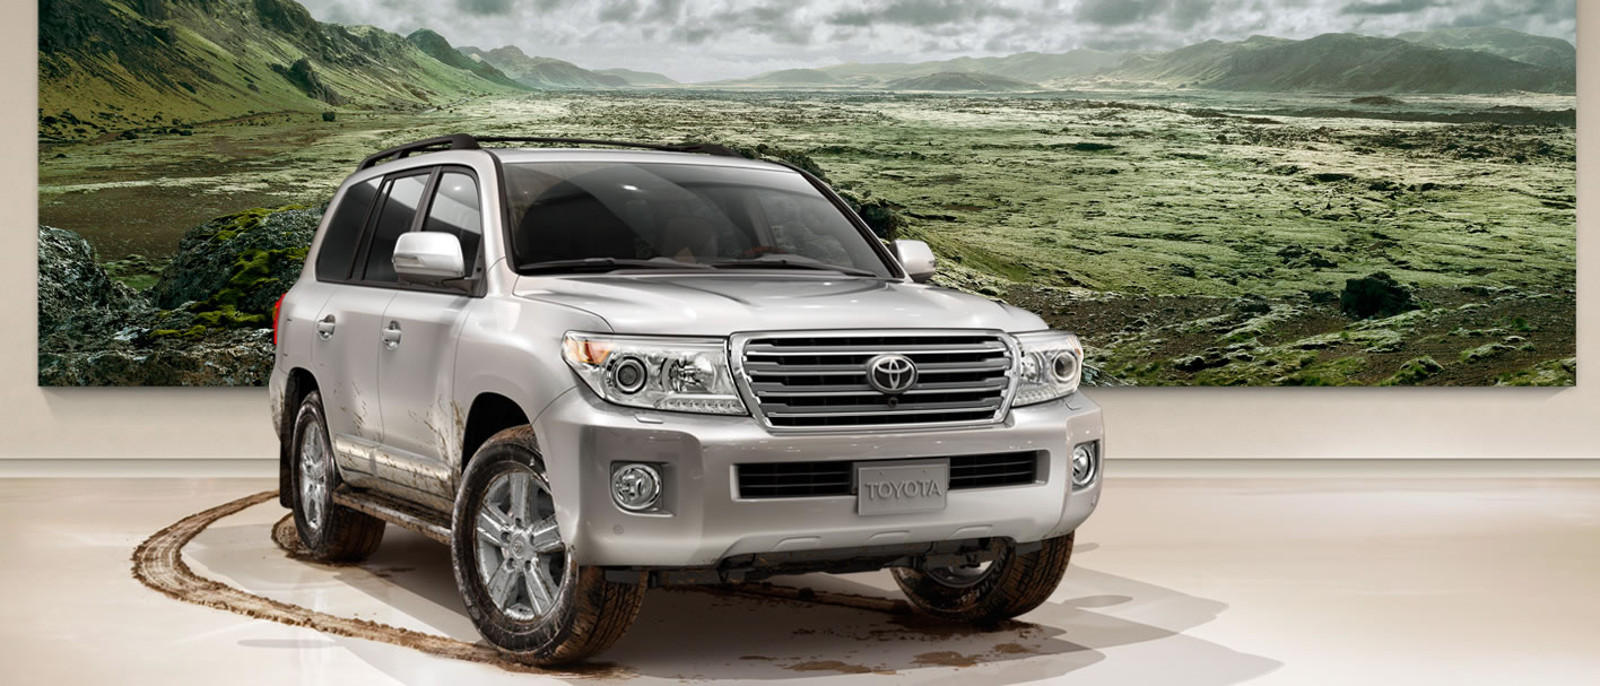 2015 Toyota Land Cruiser in showroom as display